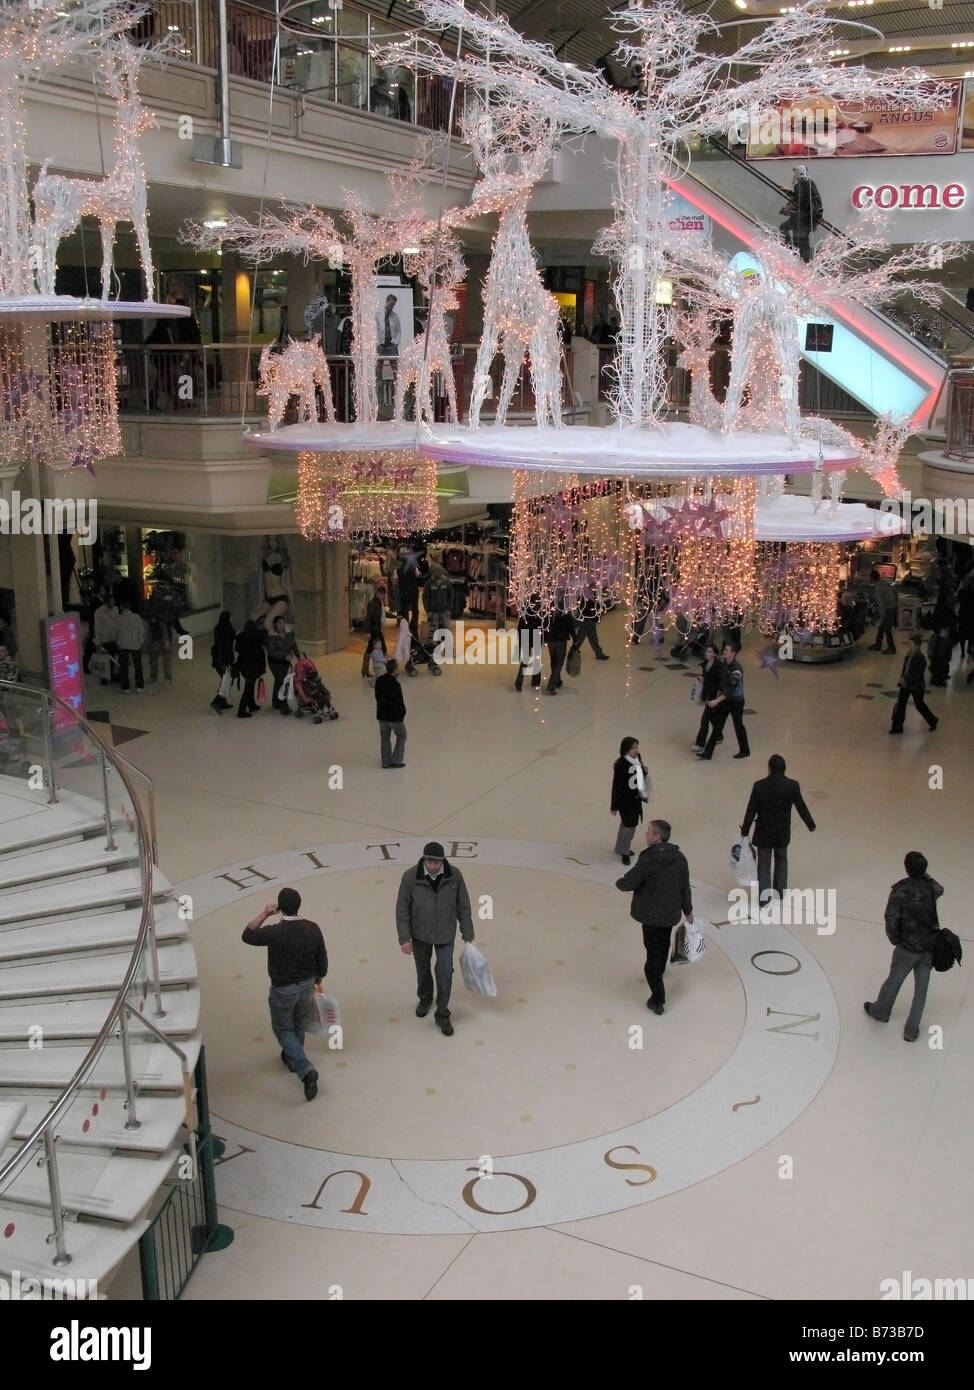 People fussing around Castle Mall during Christmas period, Norwich UK - Stock Image